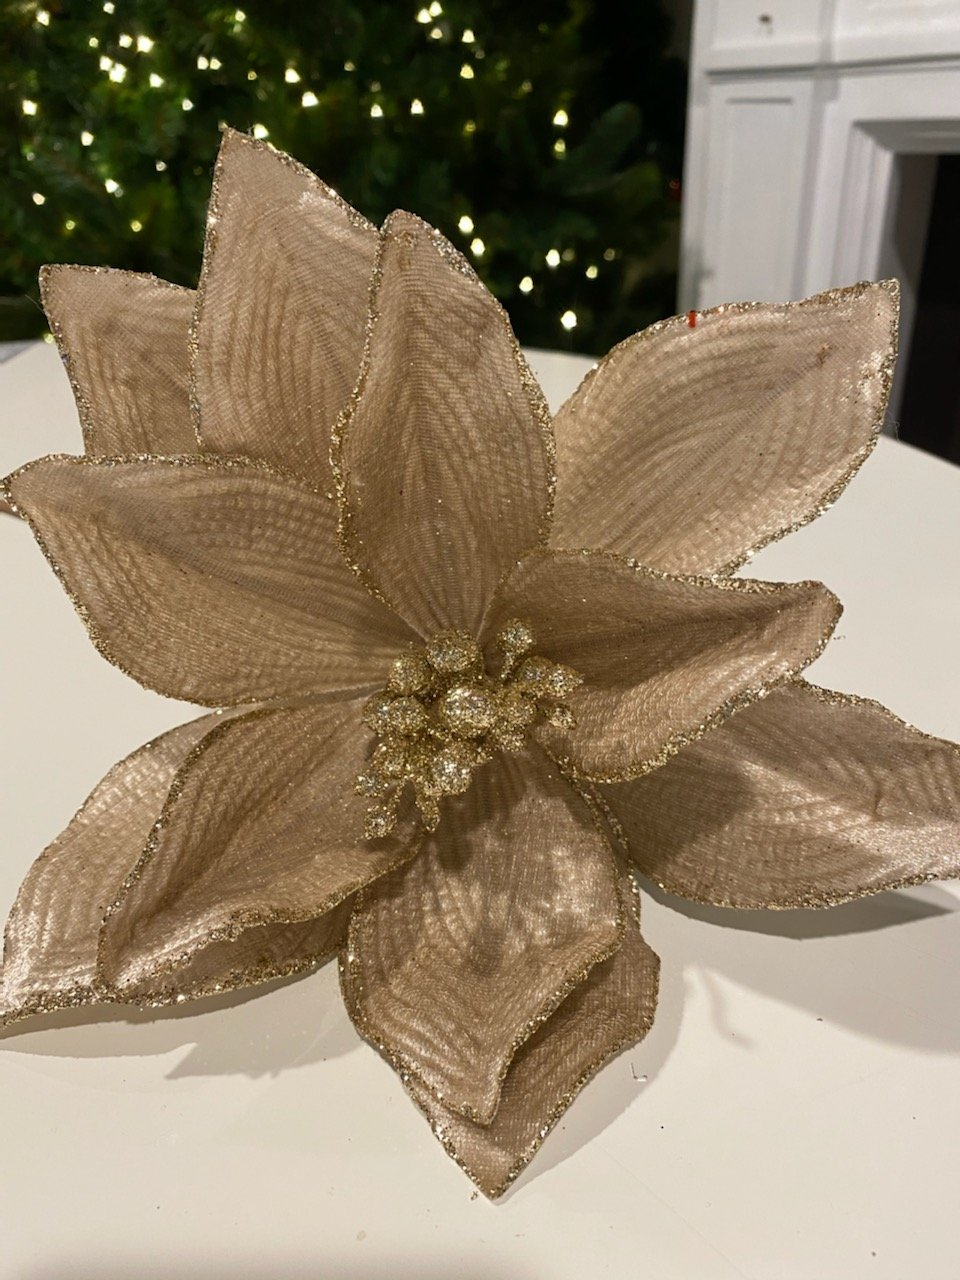 Champagne Poinsettia - My Christmas